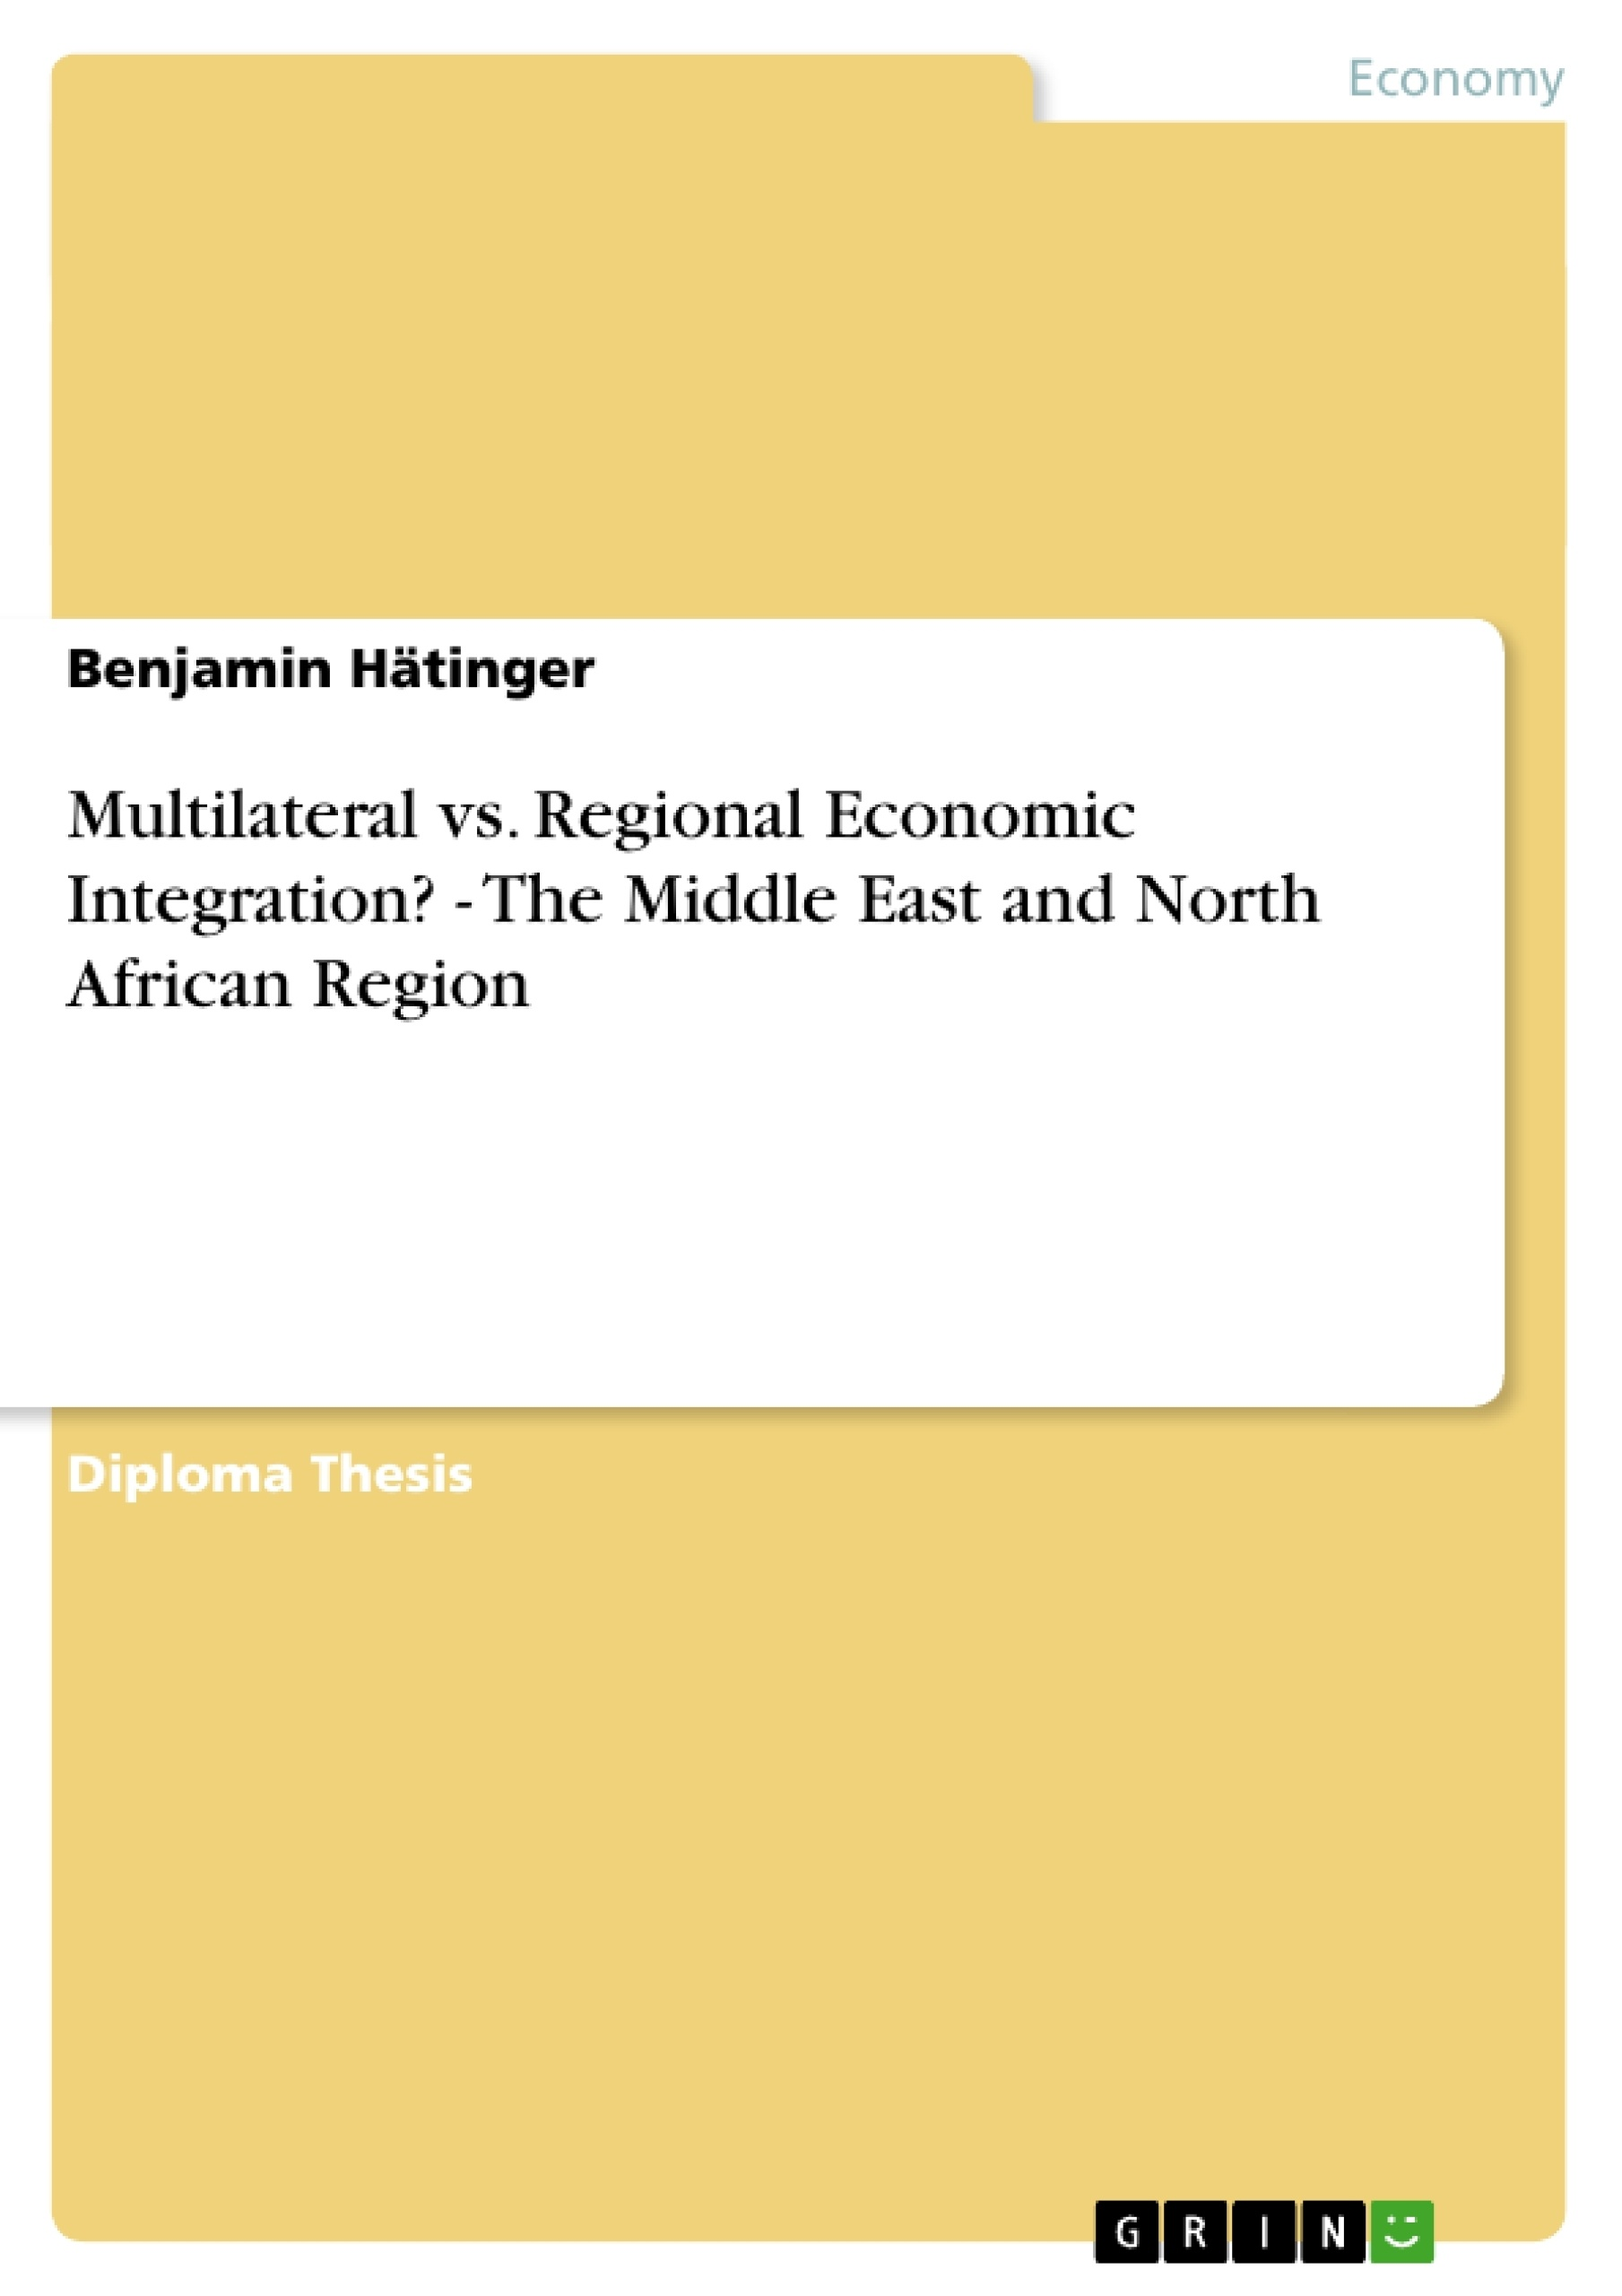 """master thesis middle east Resumes and cover letters for master's students what is the purpose of a resume  ma, middle eastern studies may 2017 ma thesis: """"dancing through the house of many mansions: dabkeh in contemporary lebanon"""" center for middle eastern studies (cmes) foreign language & area studies recipient, cmes summer grant recipient  • ma thesis."""